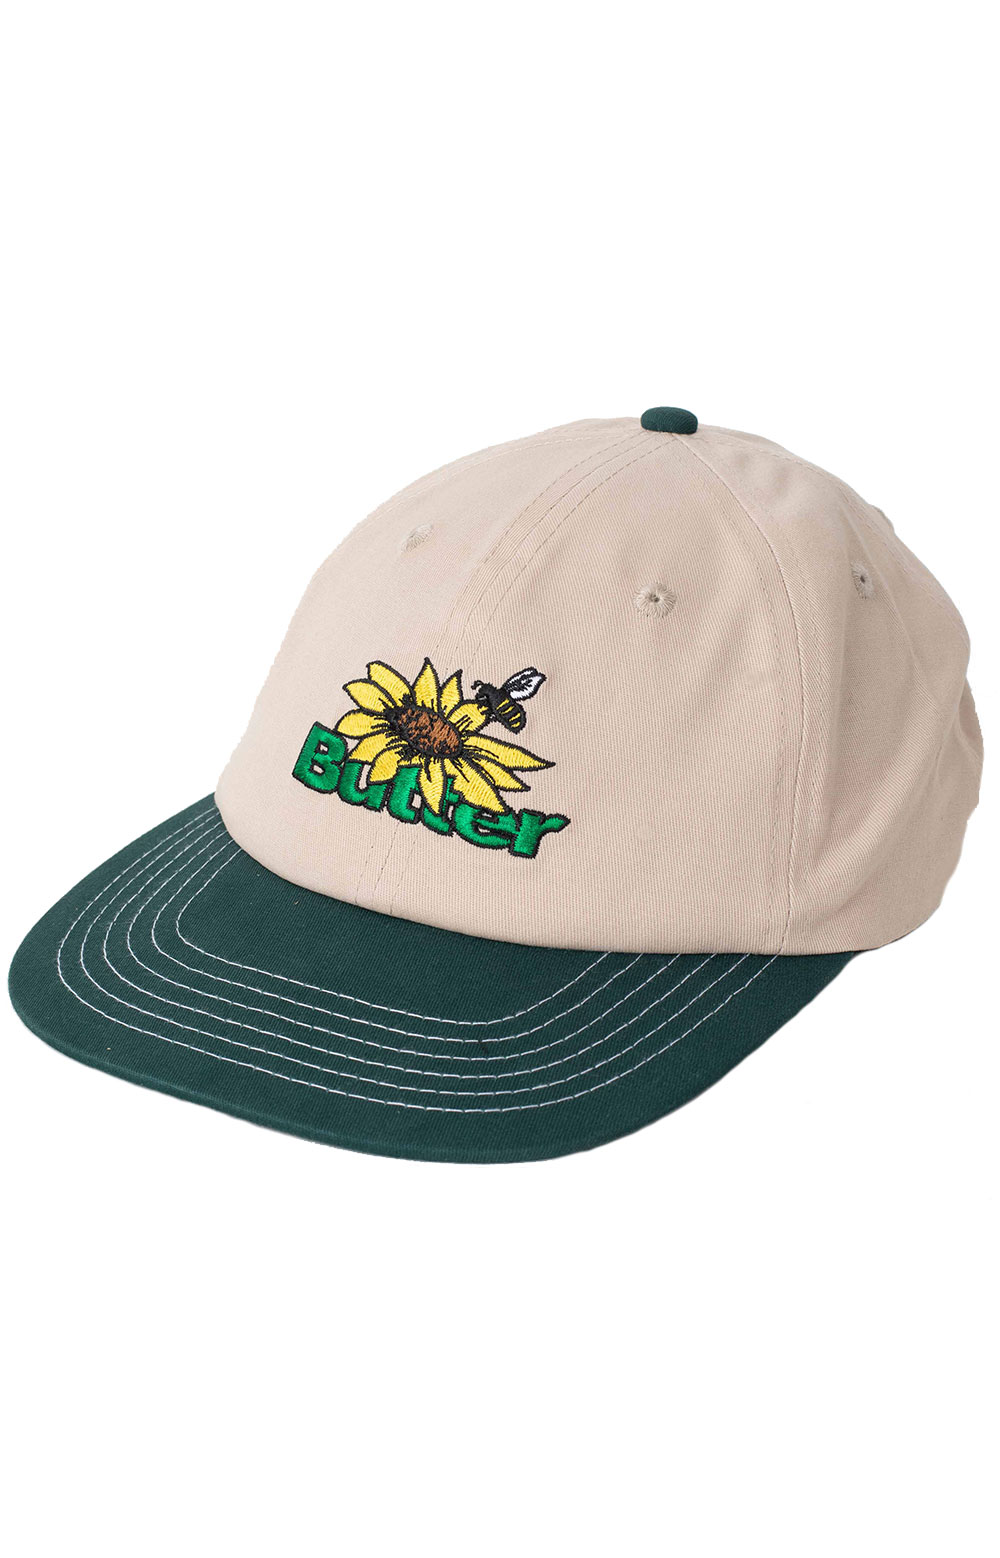 Sunflower 6 Panel Hat - Natural/Forest